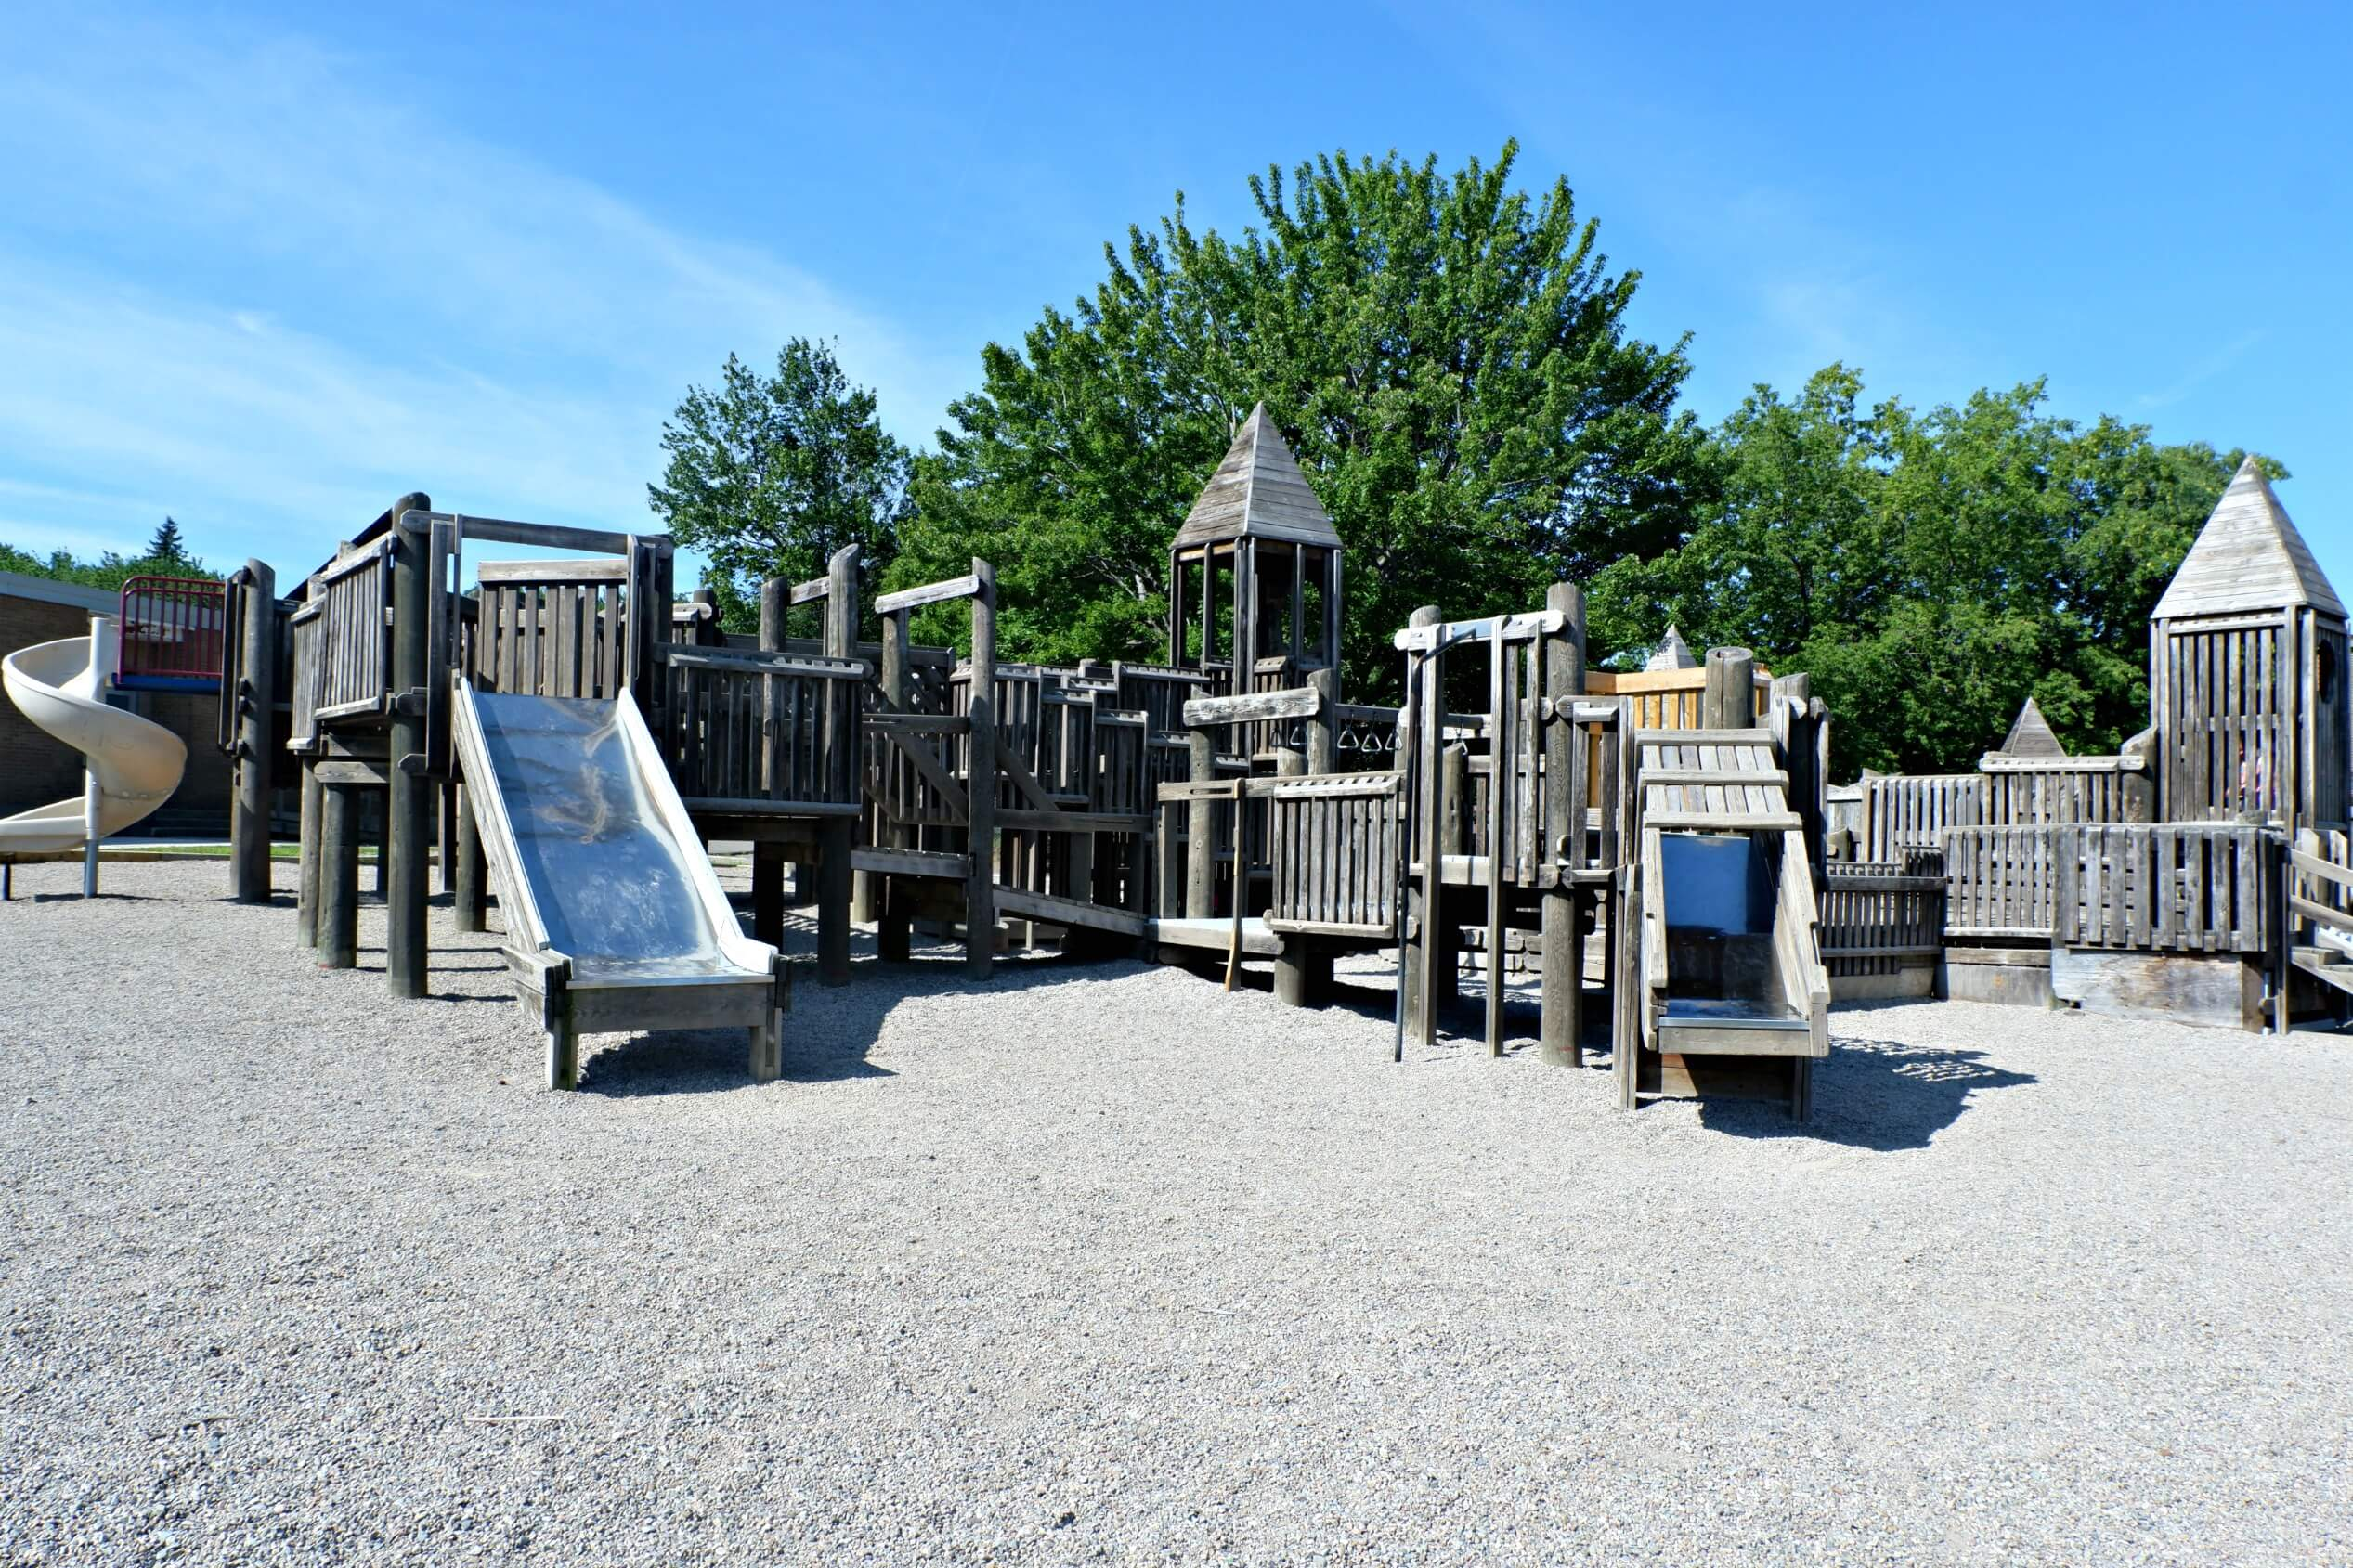 riverview wooden castle all world super play park playground moncton dieppe best pickle planet review frank l bowser elementary slides